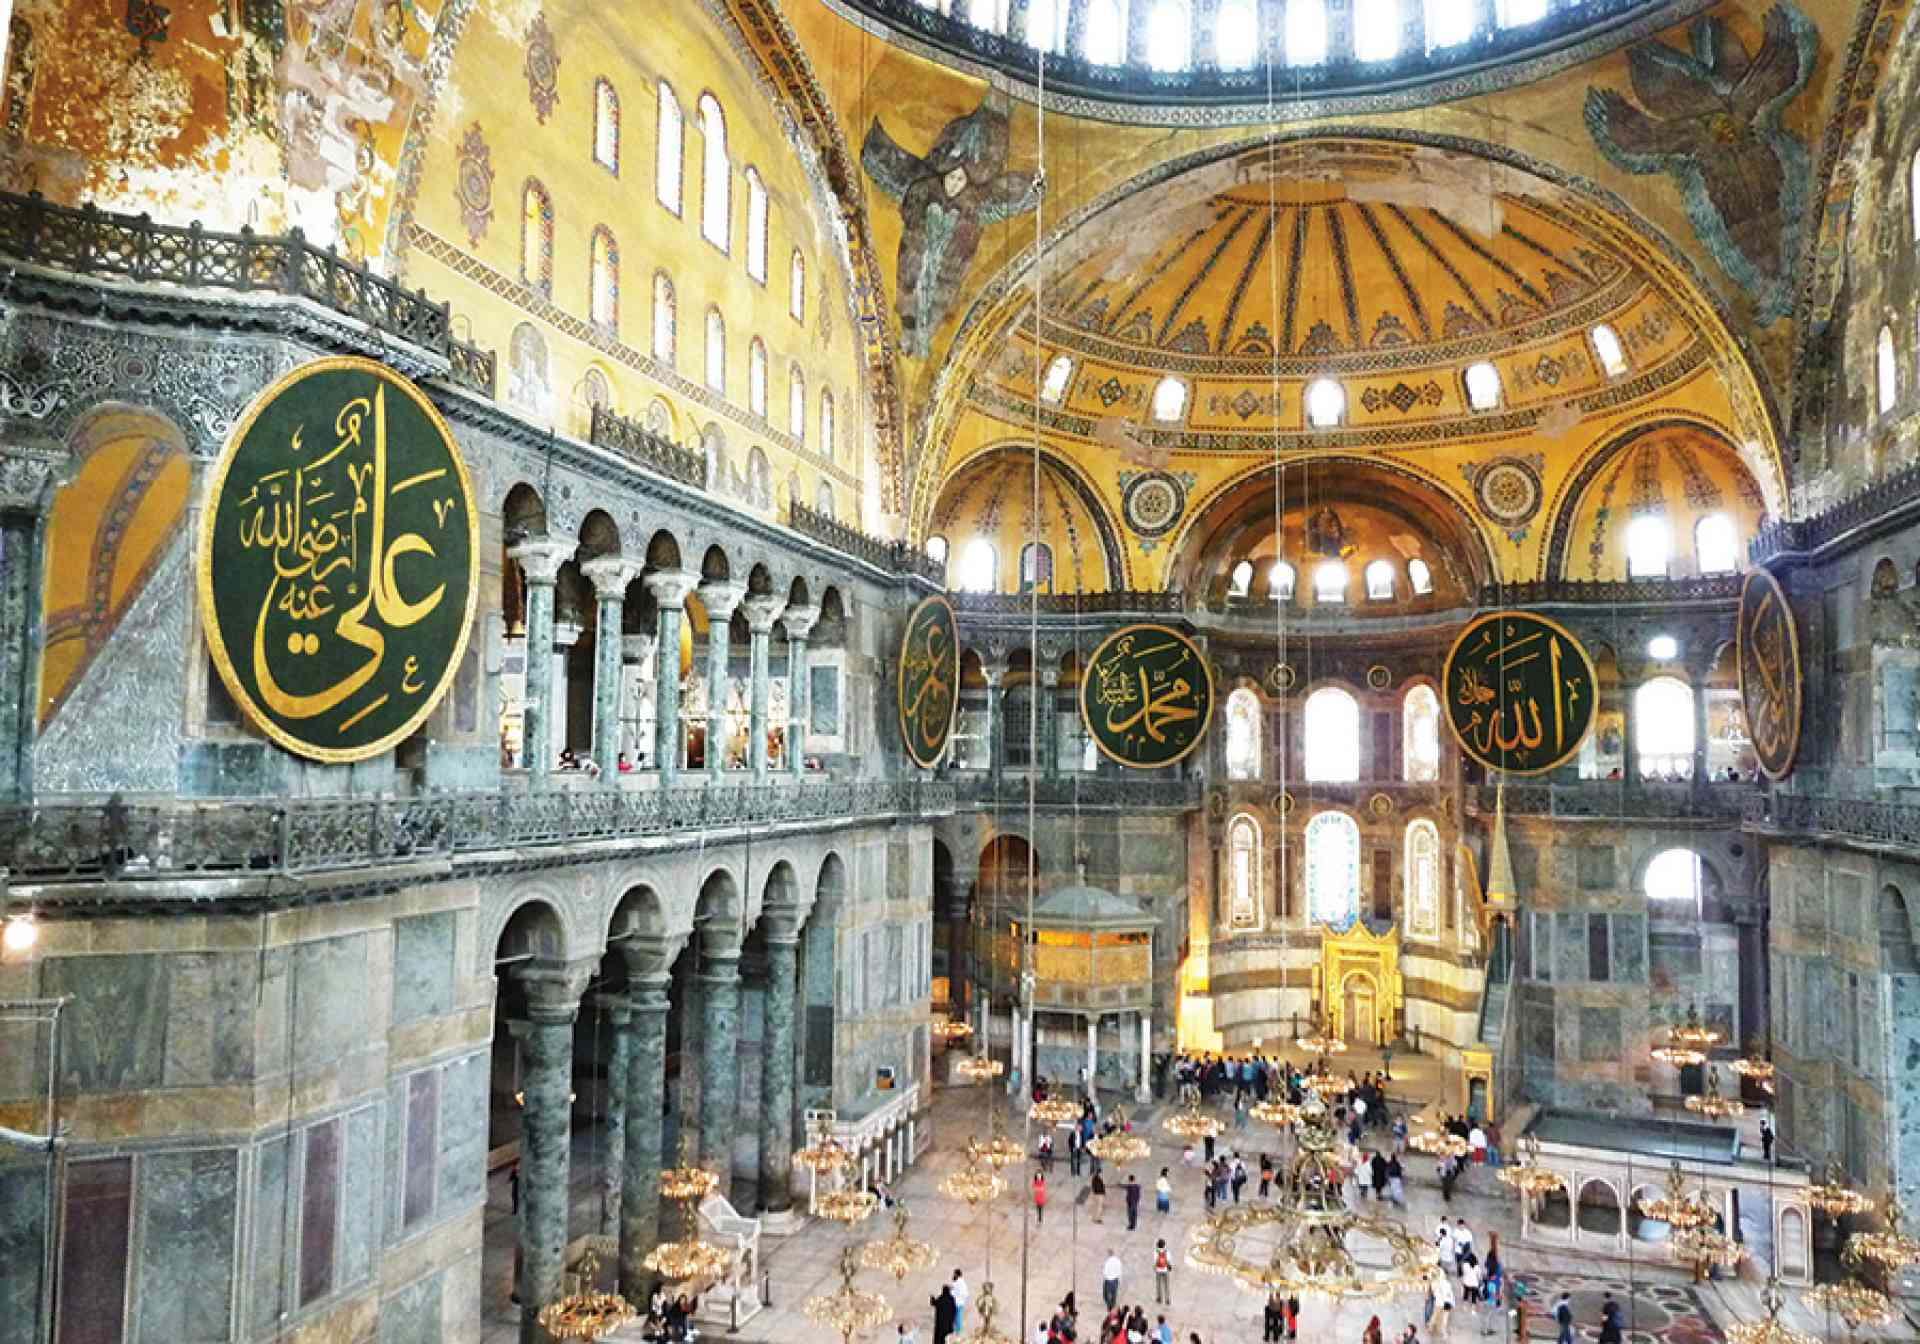 Hagia Sophia interior, Turkey by Dennis Bunnik